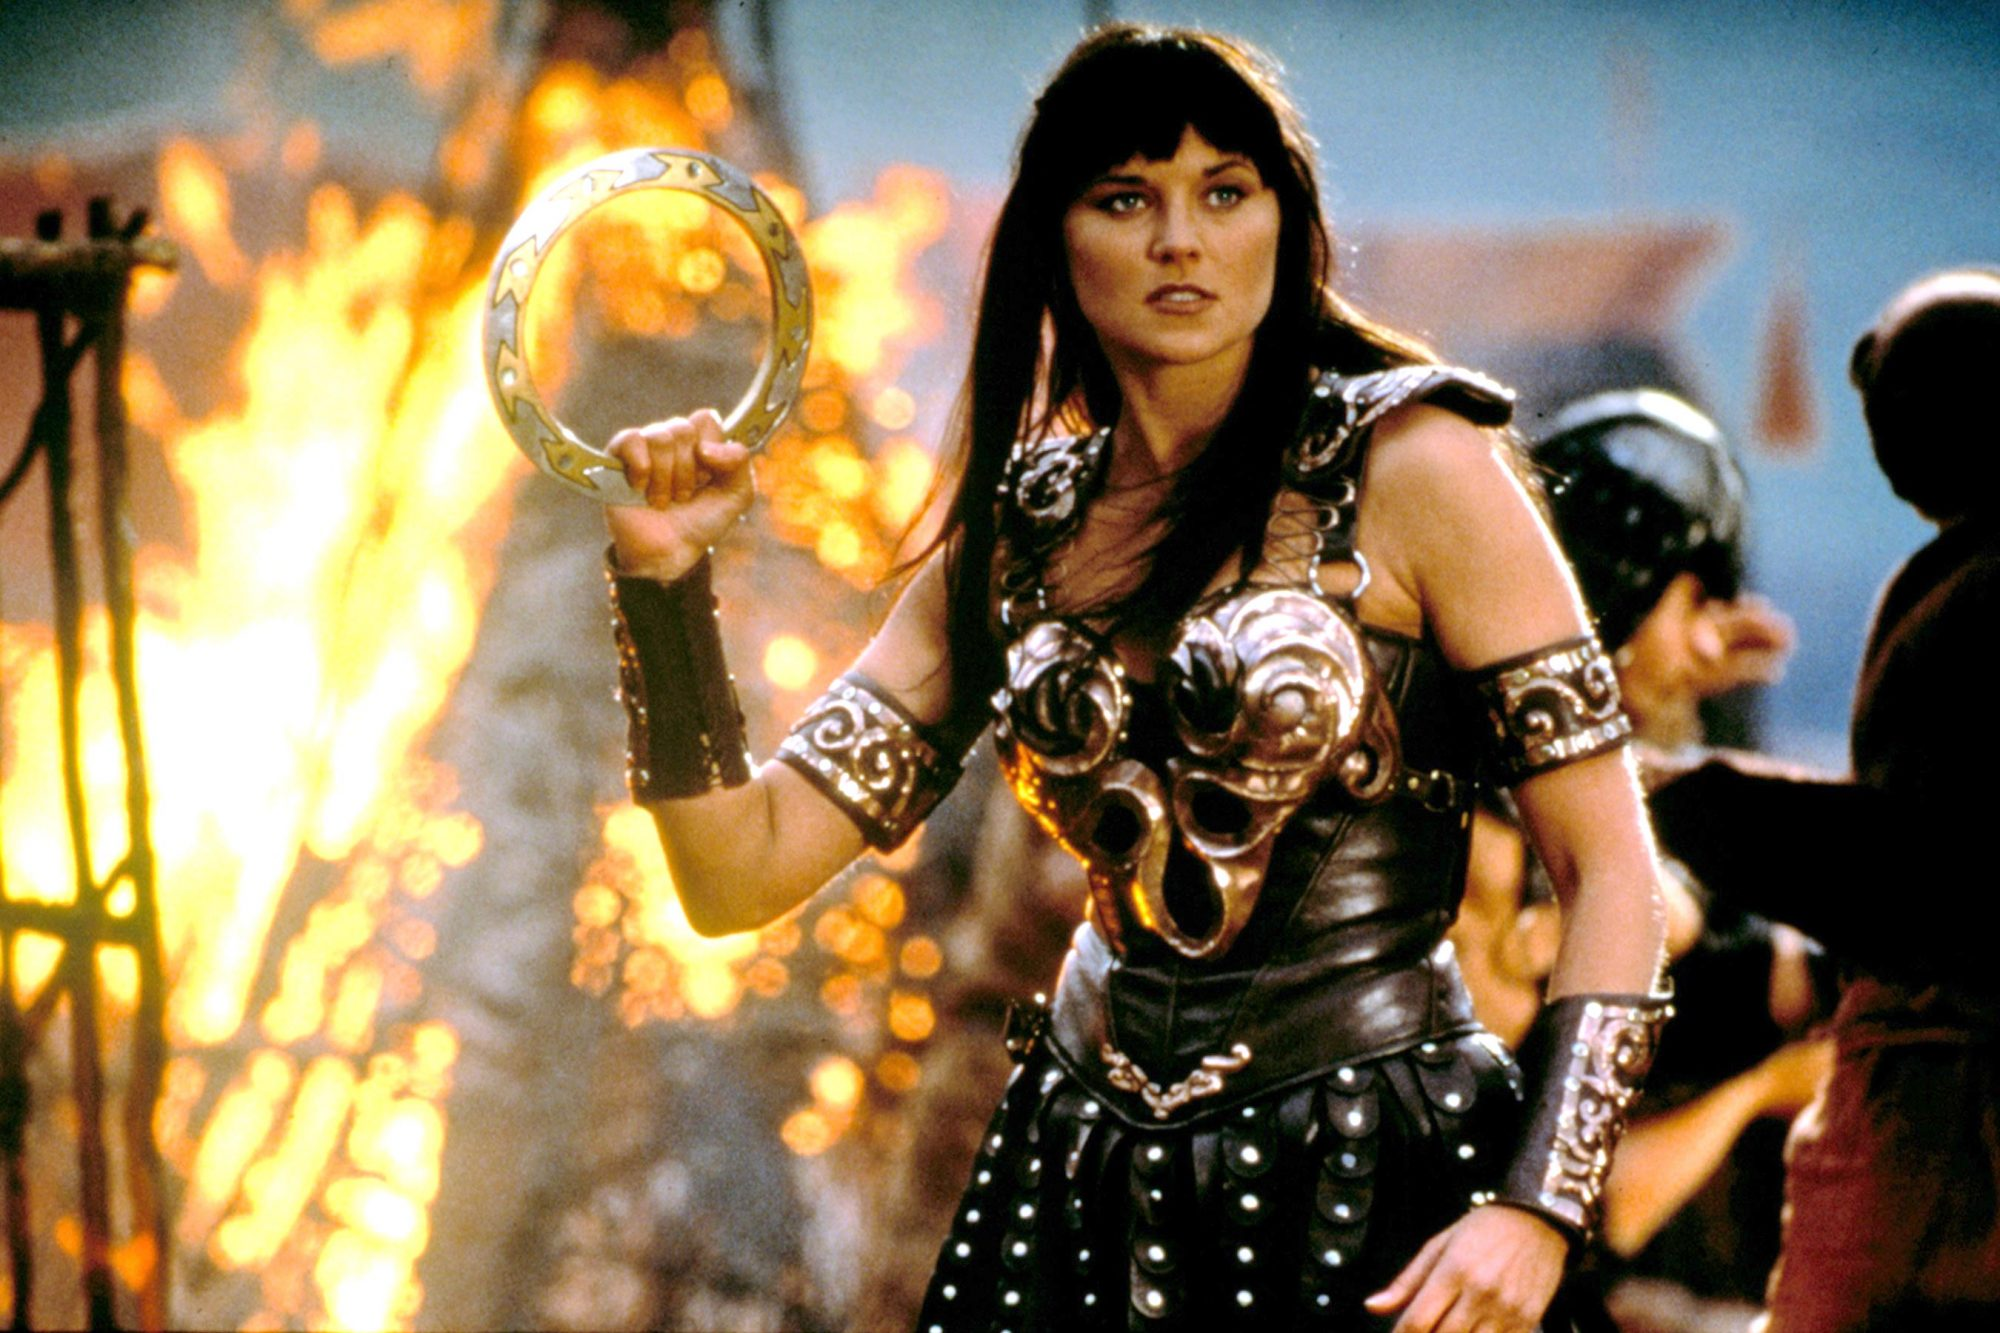 XENA-WARRIOR PRINCESS, Lucy Lawless, Episode: Return Of Callisto, 1995-2001